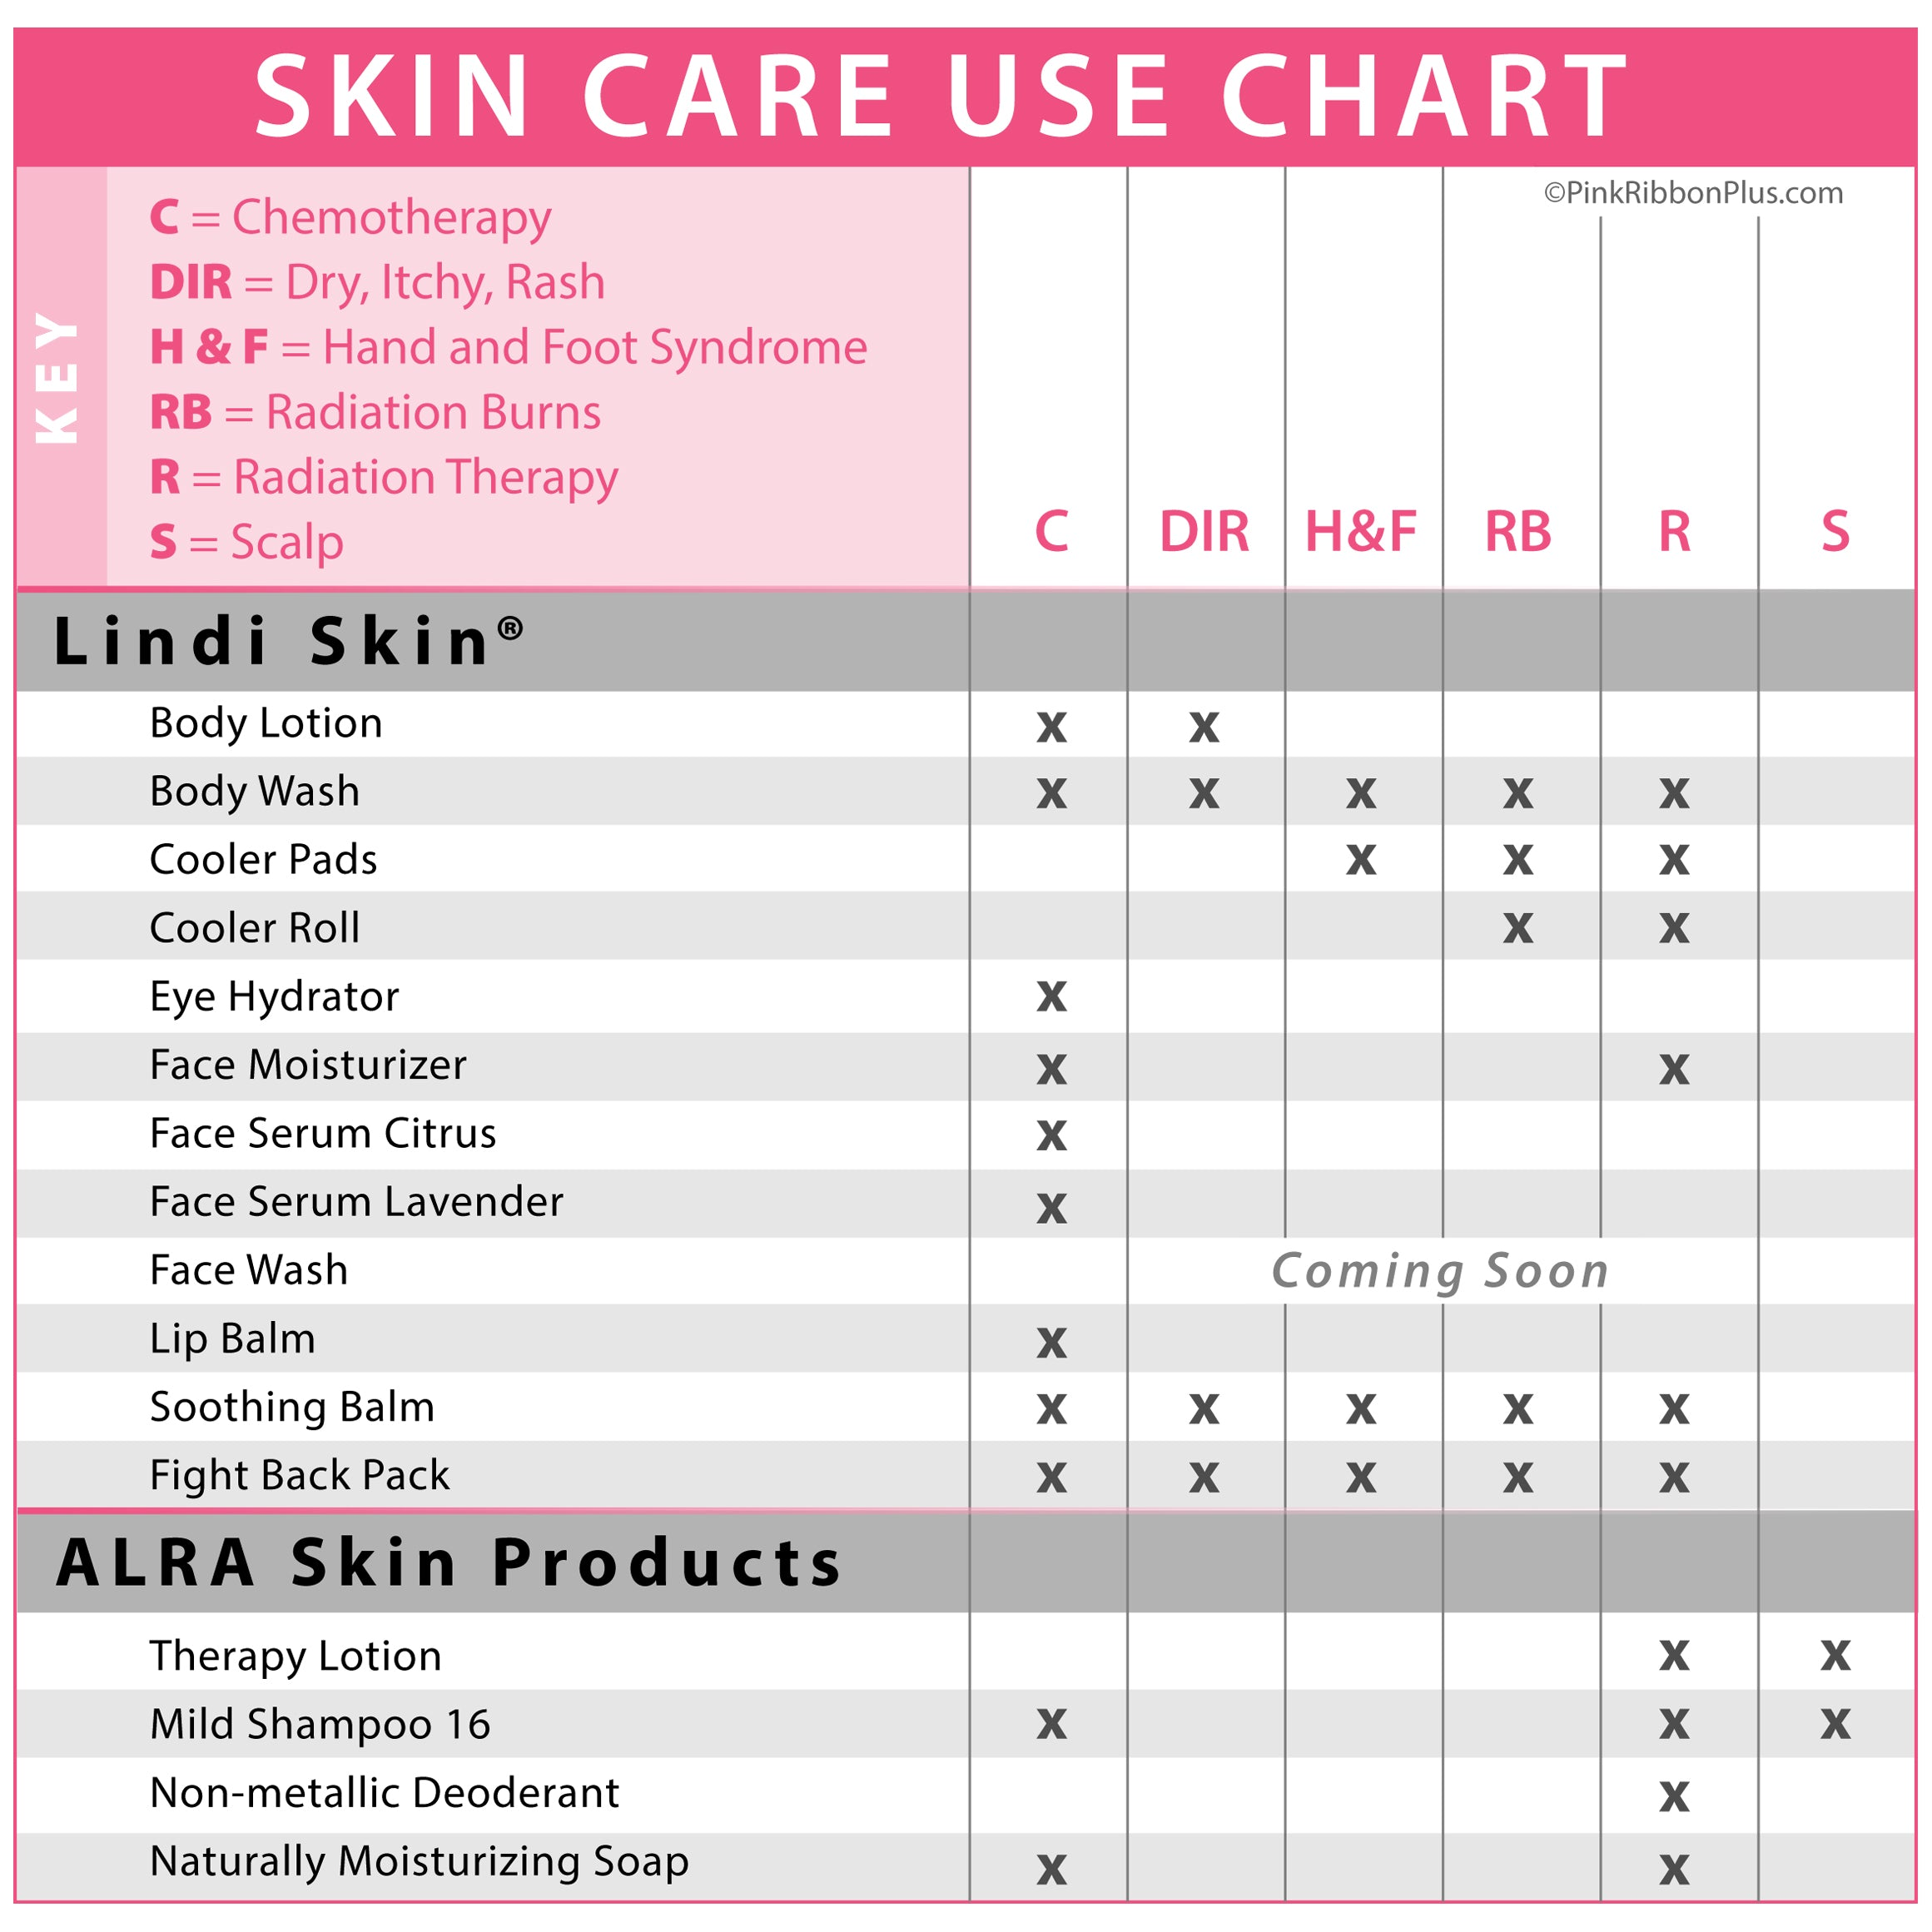 Skin care facts chemotherapy radiation therapy and scalp issues skin care chart nvjuhfo Choice Image